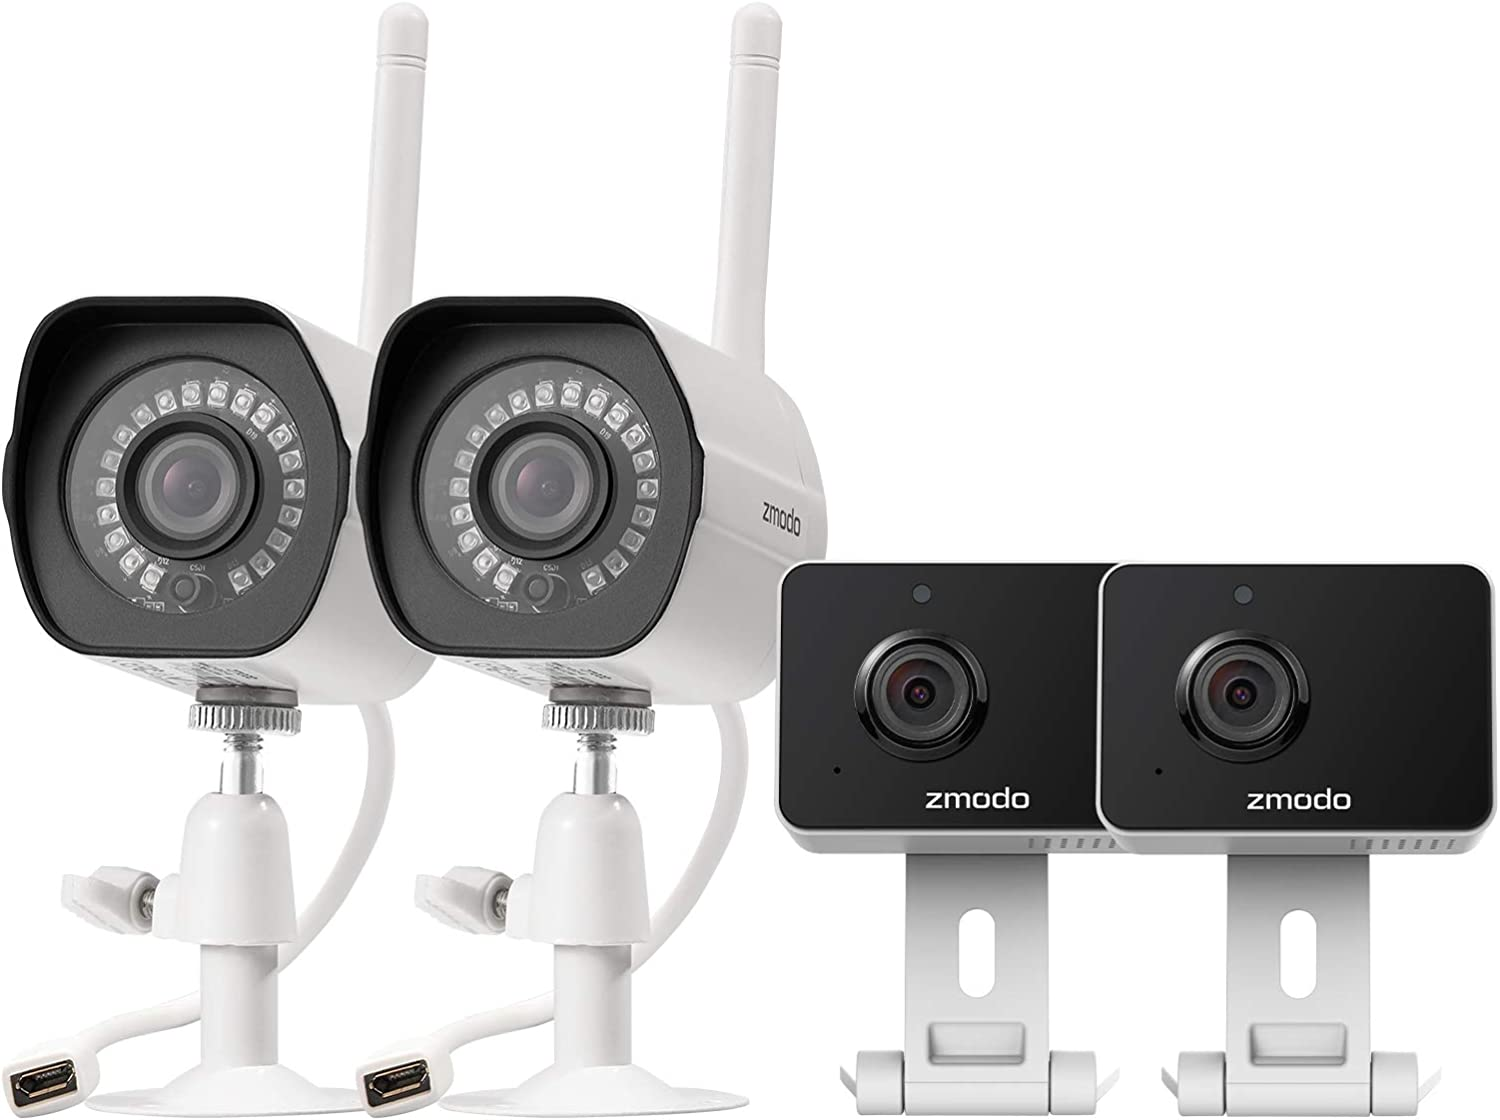 Zmodo Wireless Home Security Indoor & Outdoor Camera System